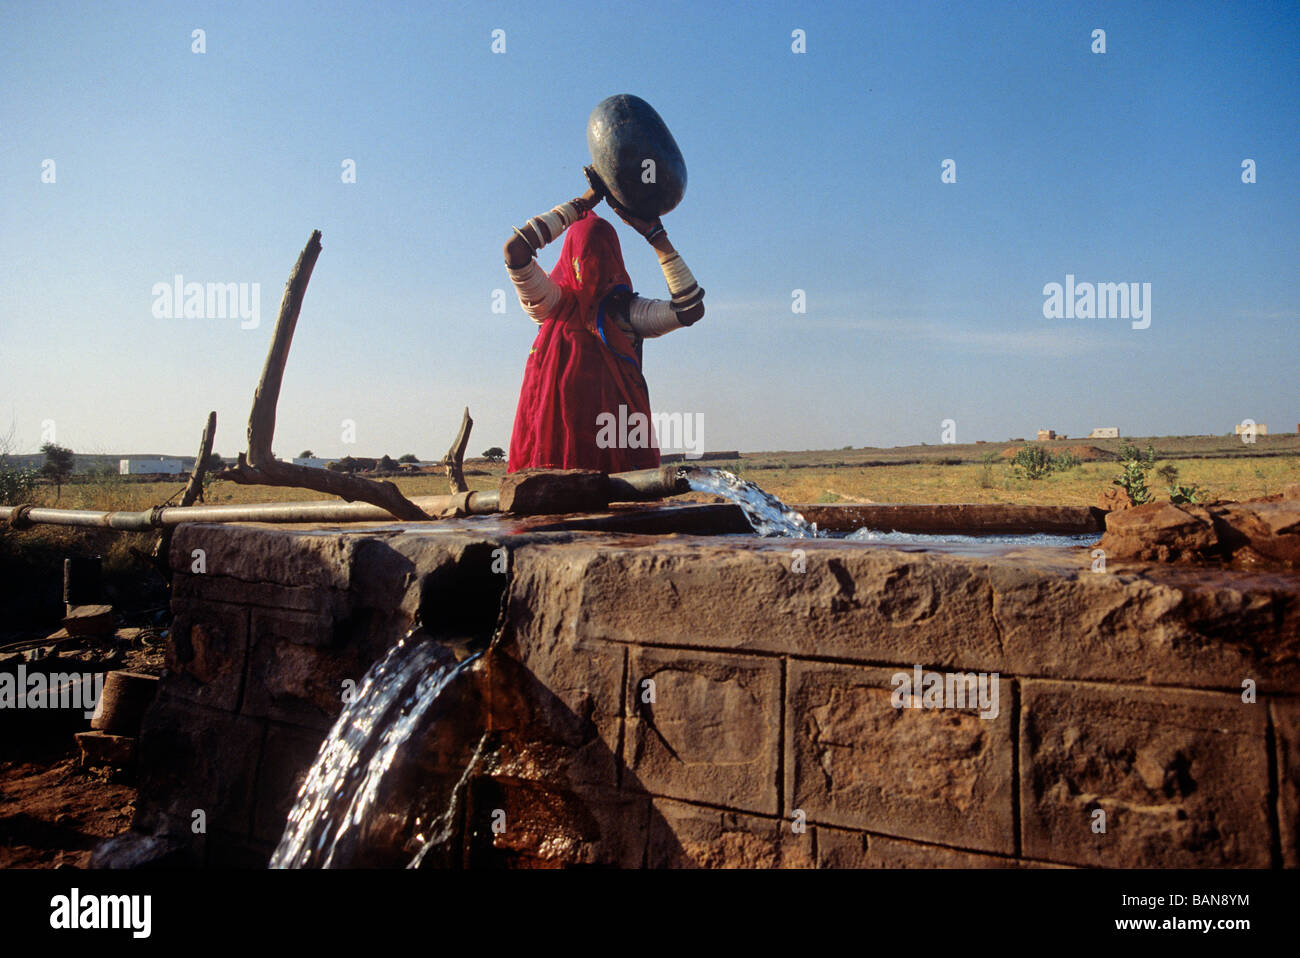 woman carrying water mug from water well state of rajasthan india - Stock Image